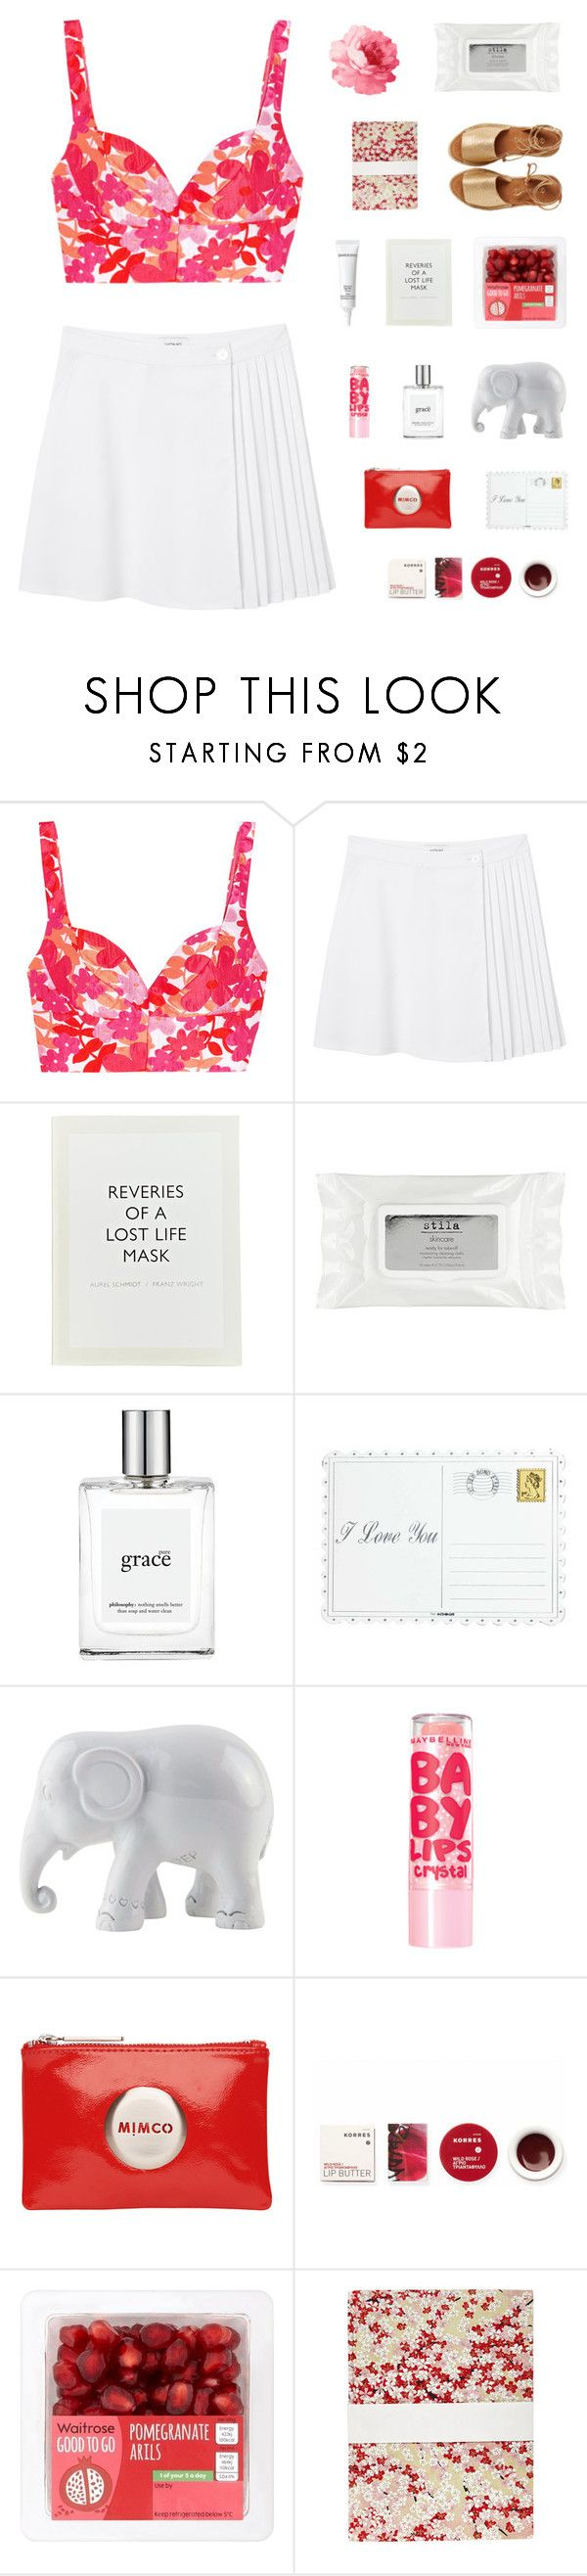 """""""CALL ME OUT // SARAH CLOSE"""" by janettetang ❤ liked on Polyvore featuring Michael Kors, Monki, Elizabeth Arden, ...Lost, Stila, philosophy, Asprey, The Elephant Family, Maybelline and Mimco"""